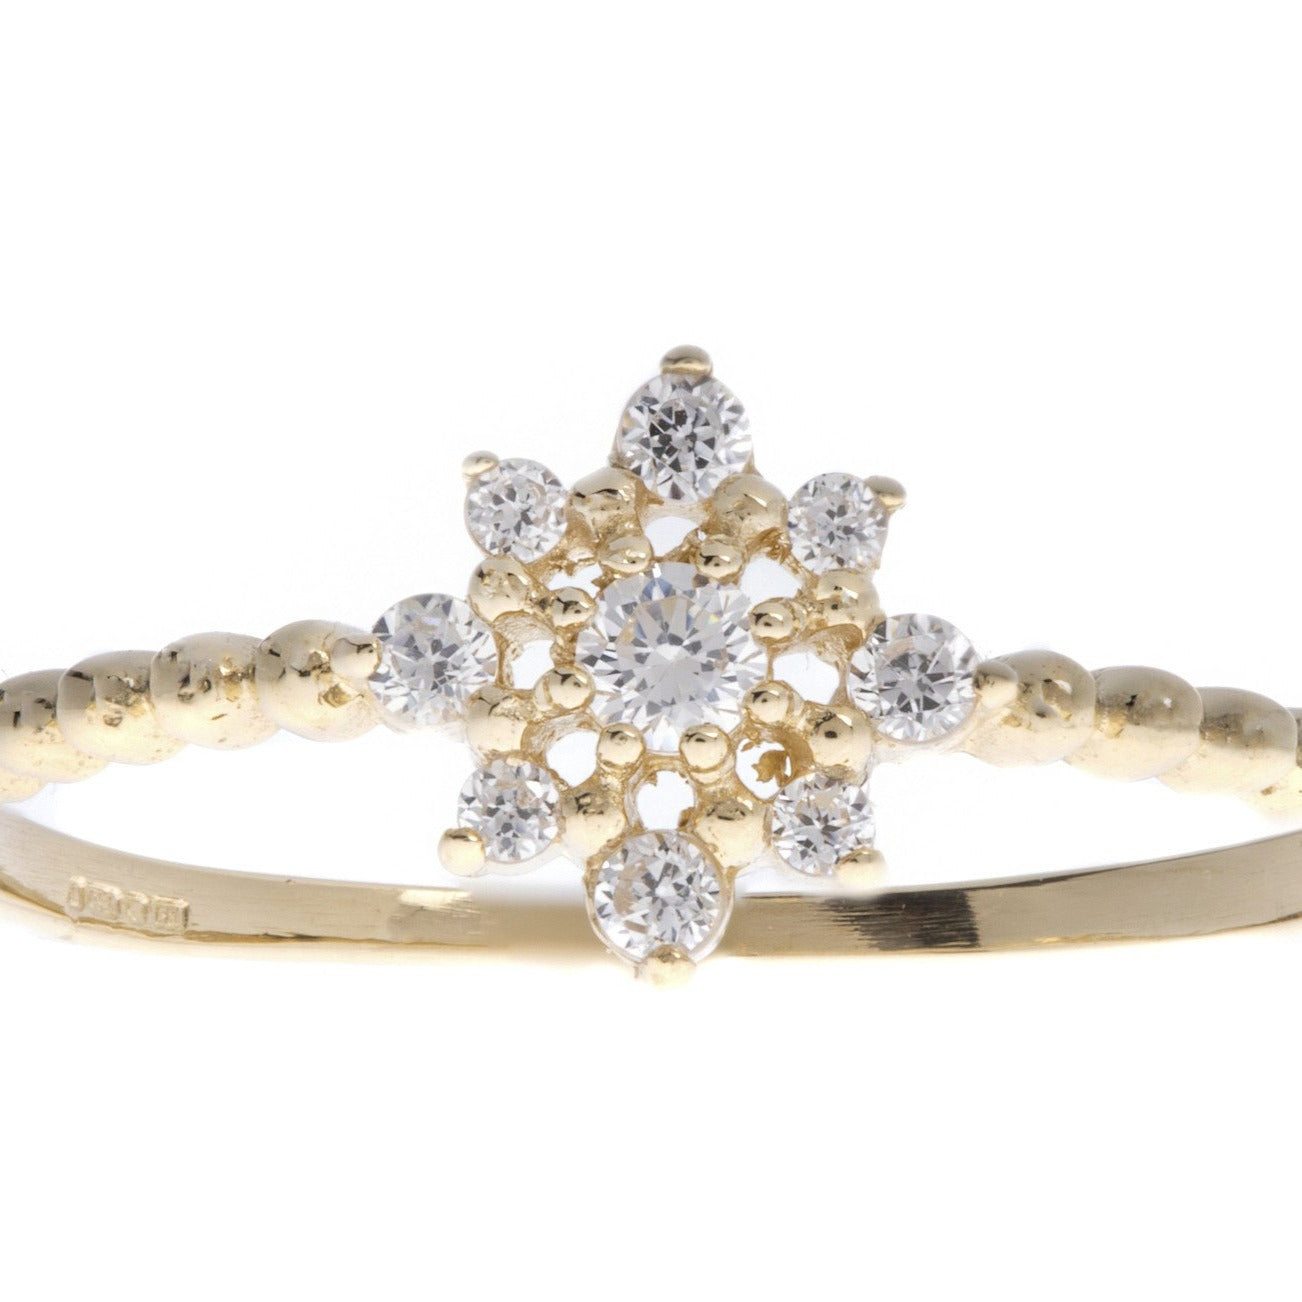 18ct White / Yellow Gold Cubic Zirconia Dress Ring, Minar Jewellers - 3